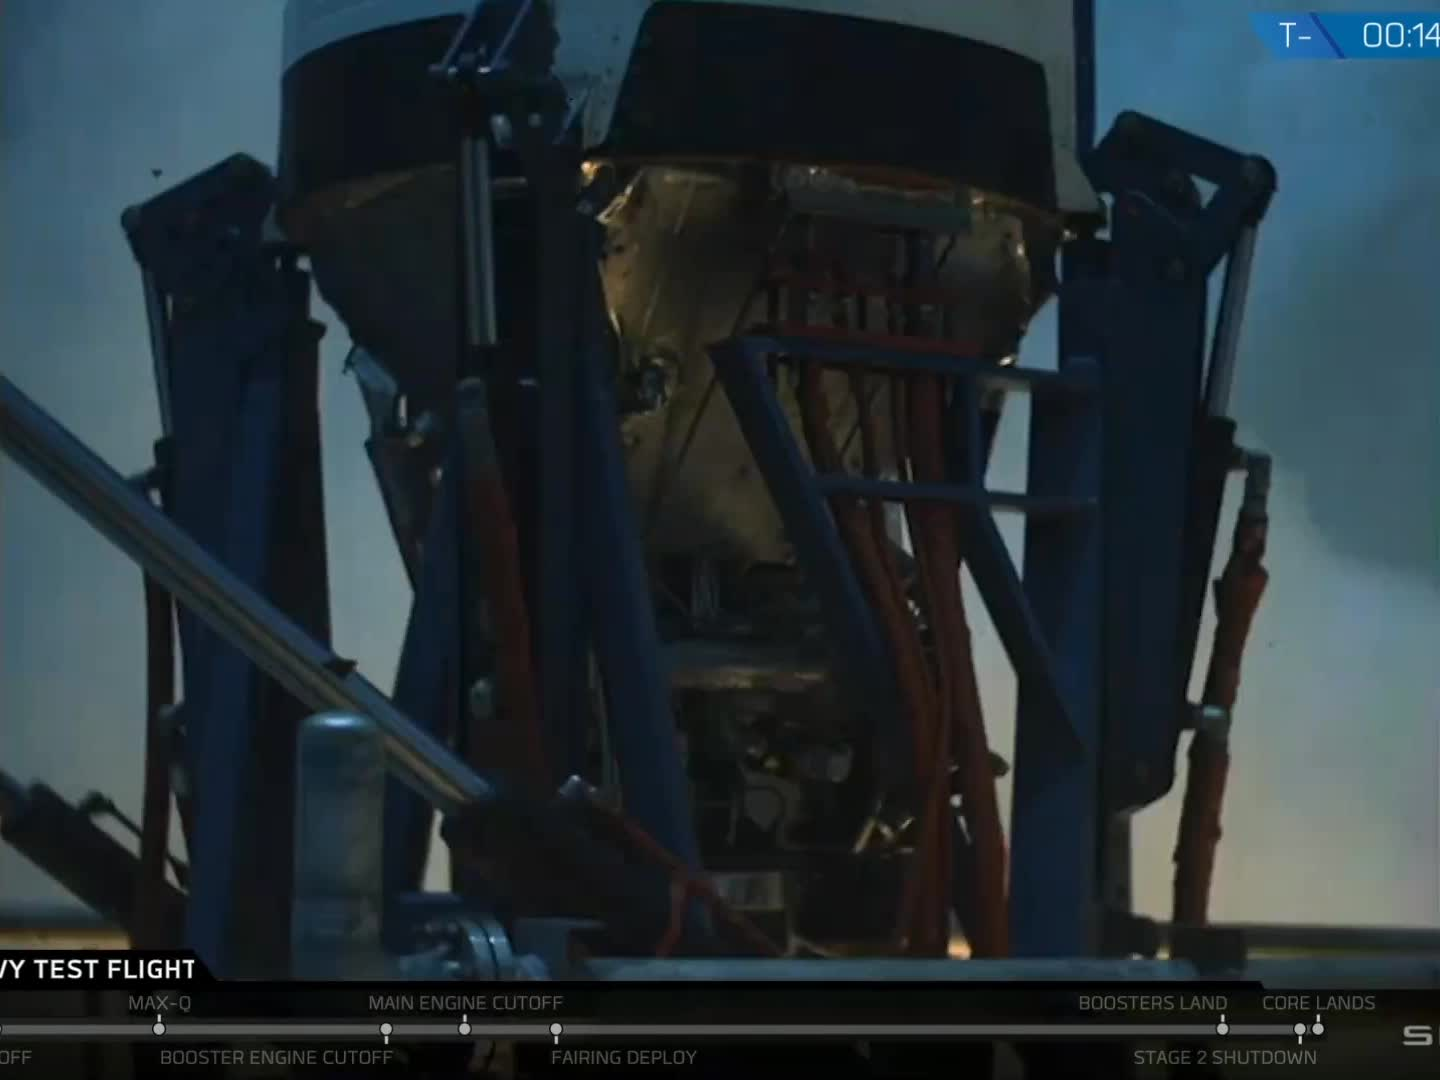 Falcon 1, Liftoff, SpaceX, SpaceXLounge, Falcon 1 Liftoff Loop GIFs